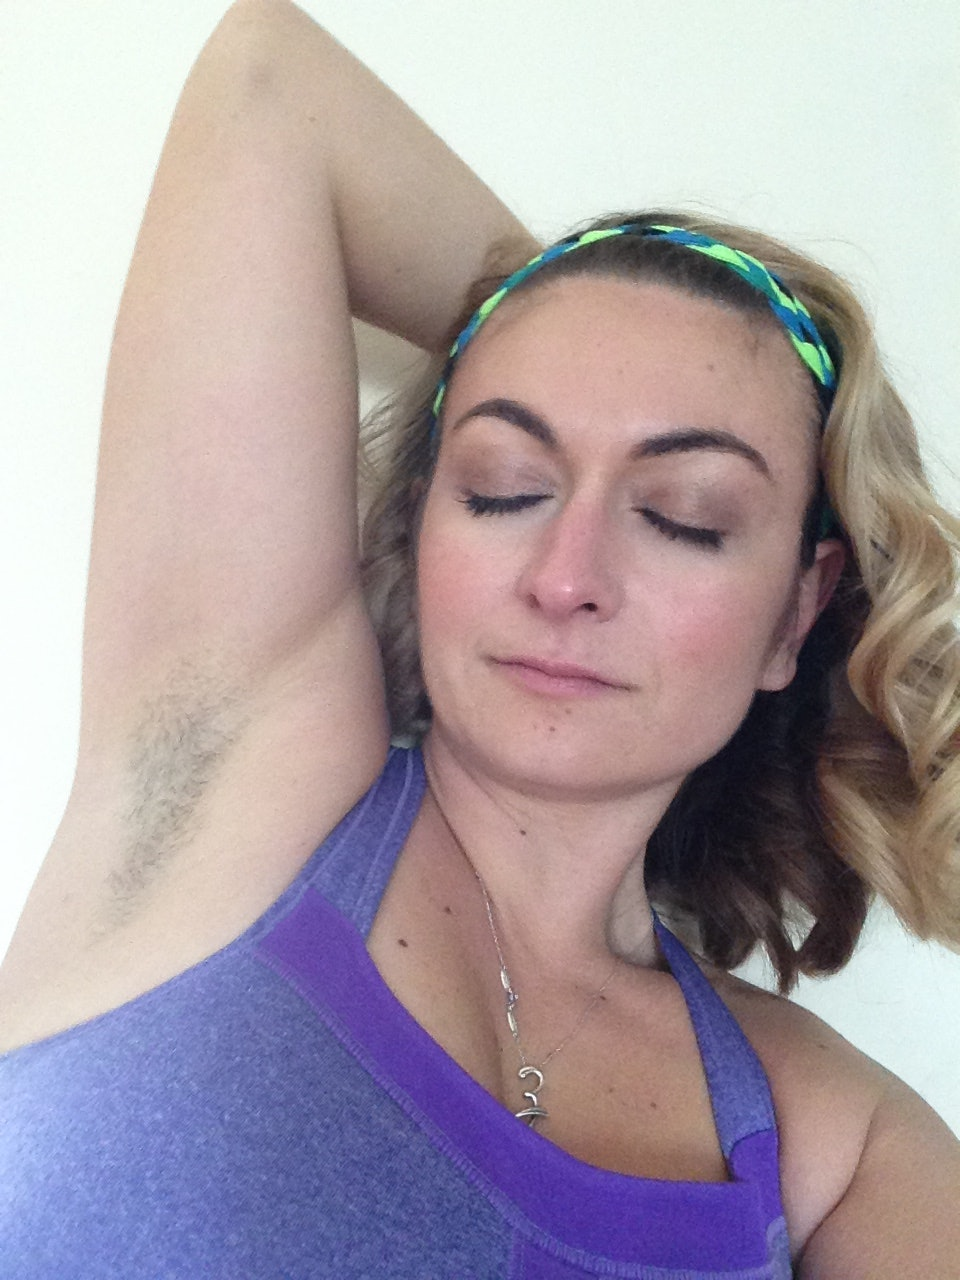 Pictures of shaved armpits